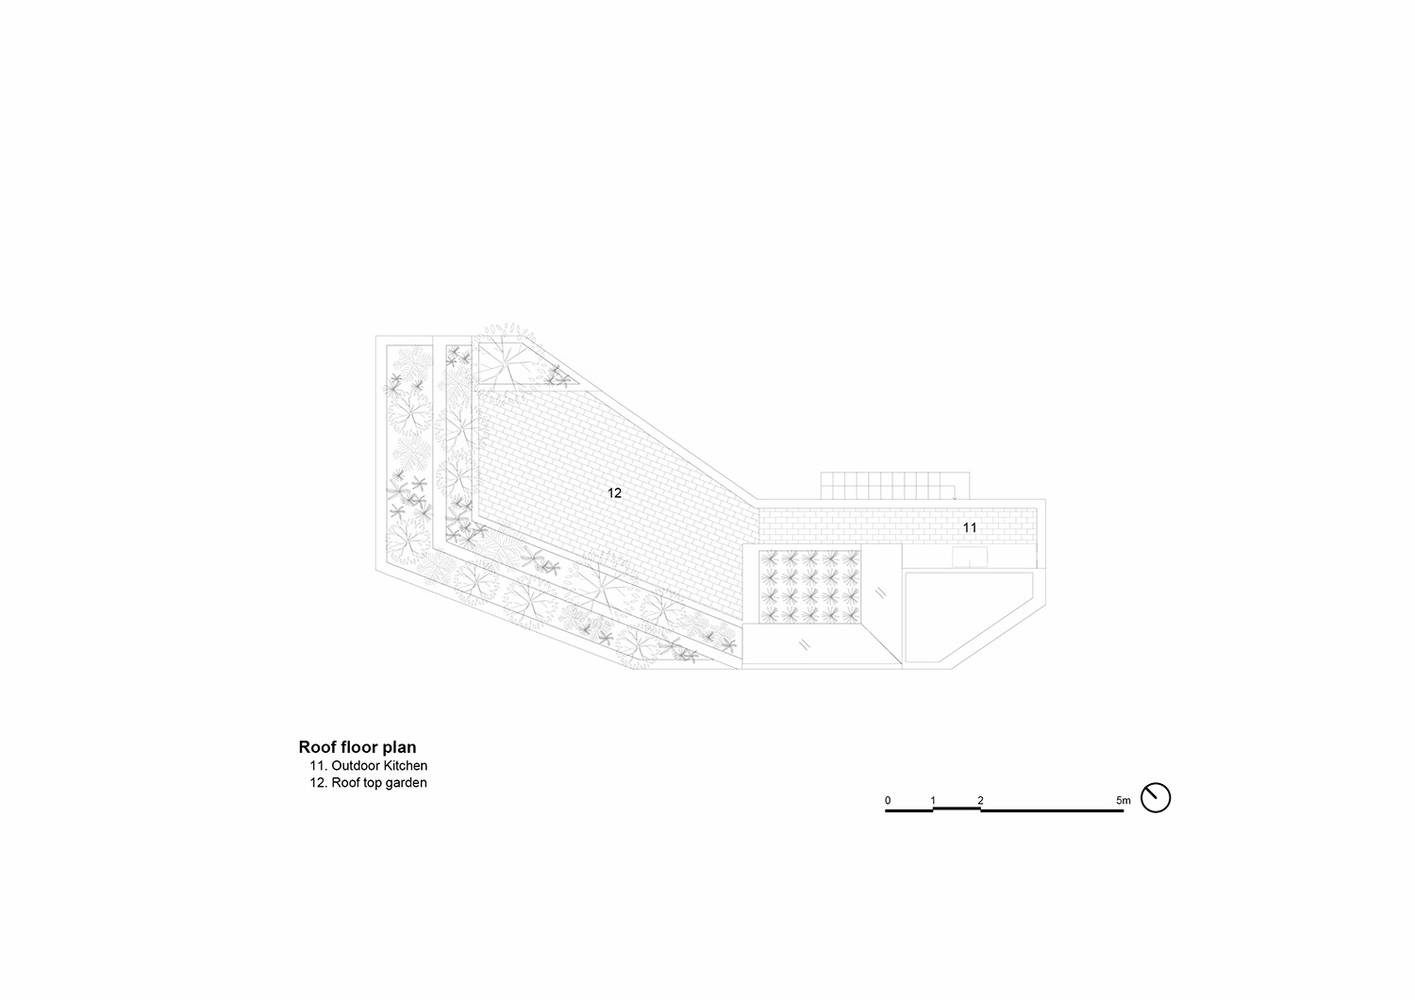 HH_DRAWING_4_roof_floor_plan